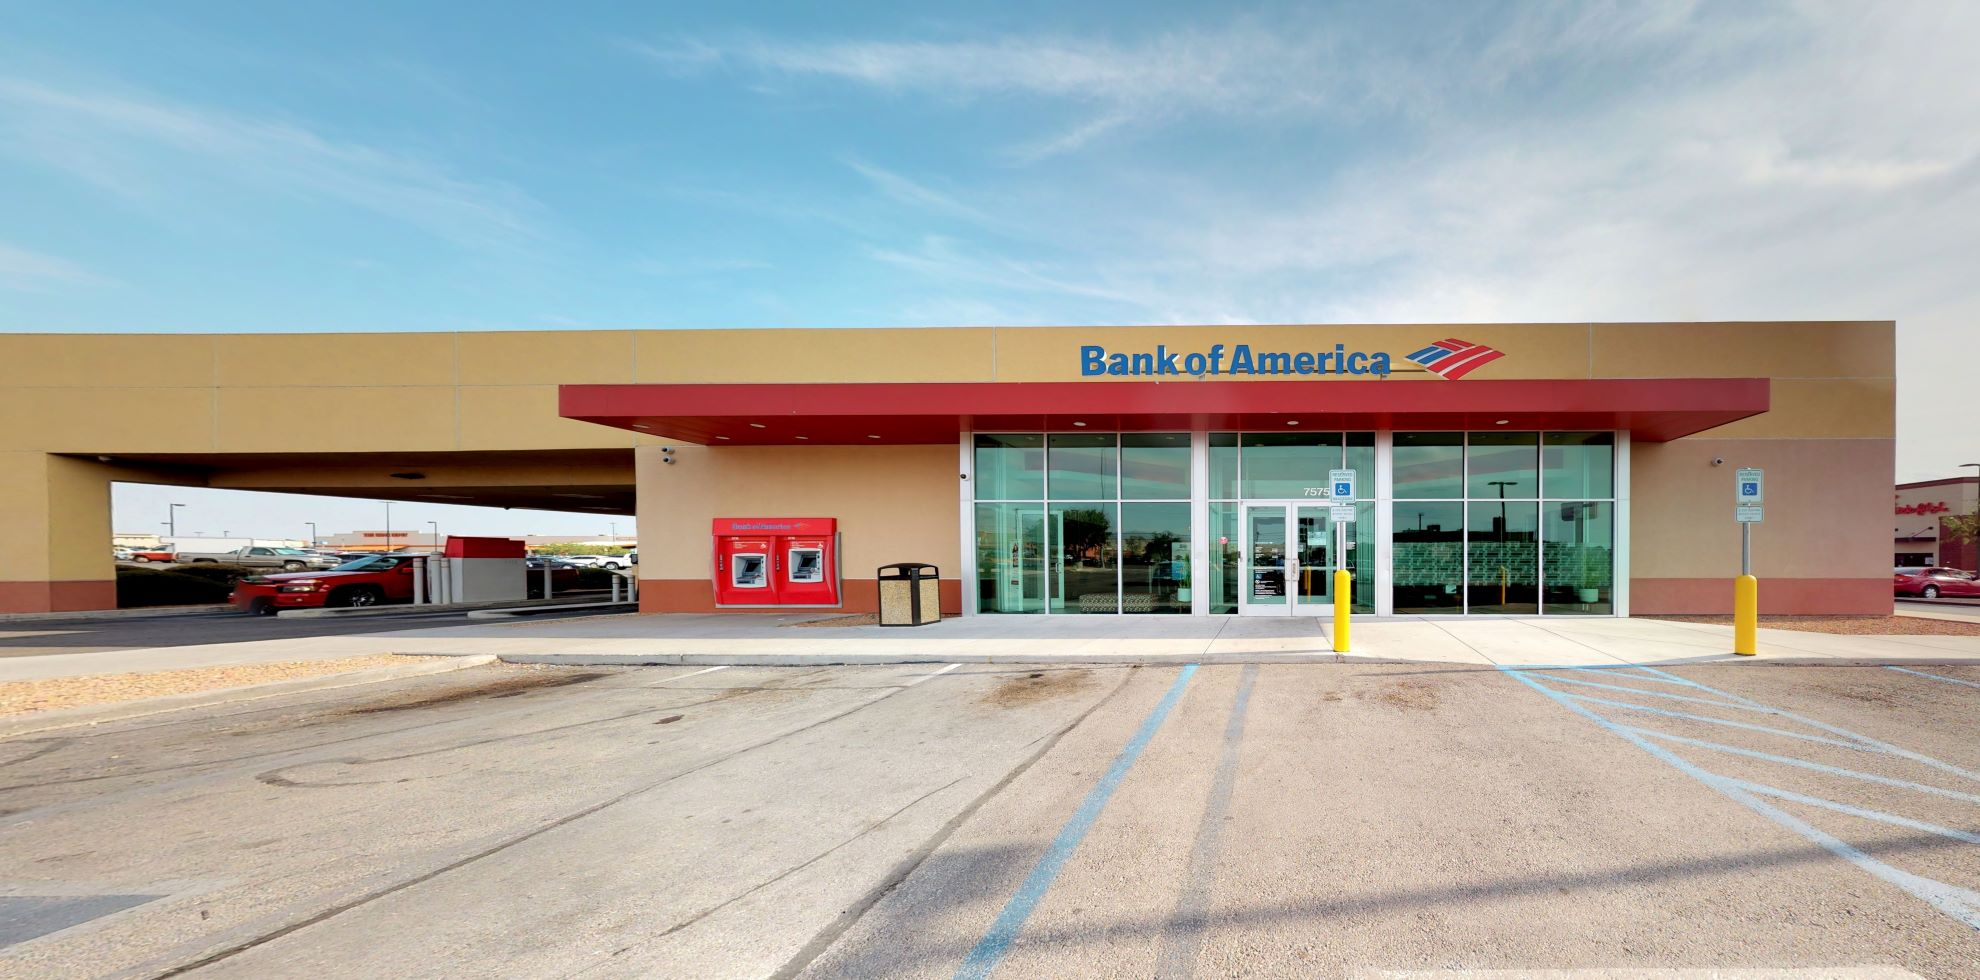 Bank of America financial center with drive-thru ATM and teller | 7575 N Mesa St, El Paso, TX 79912